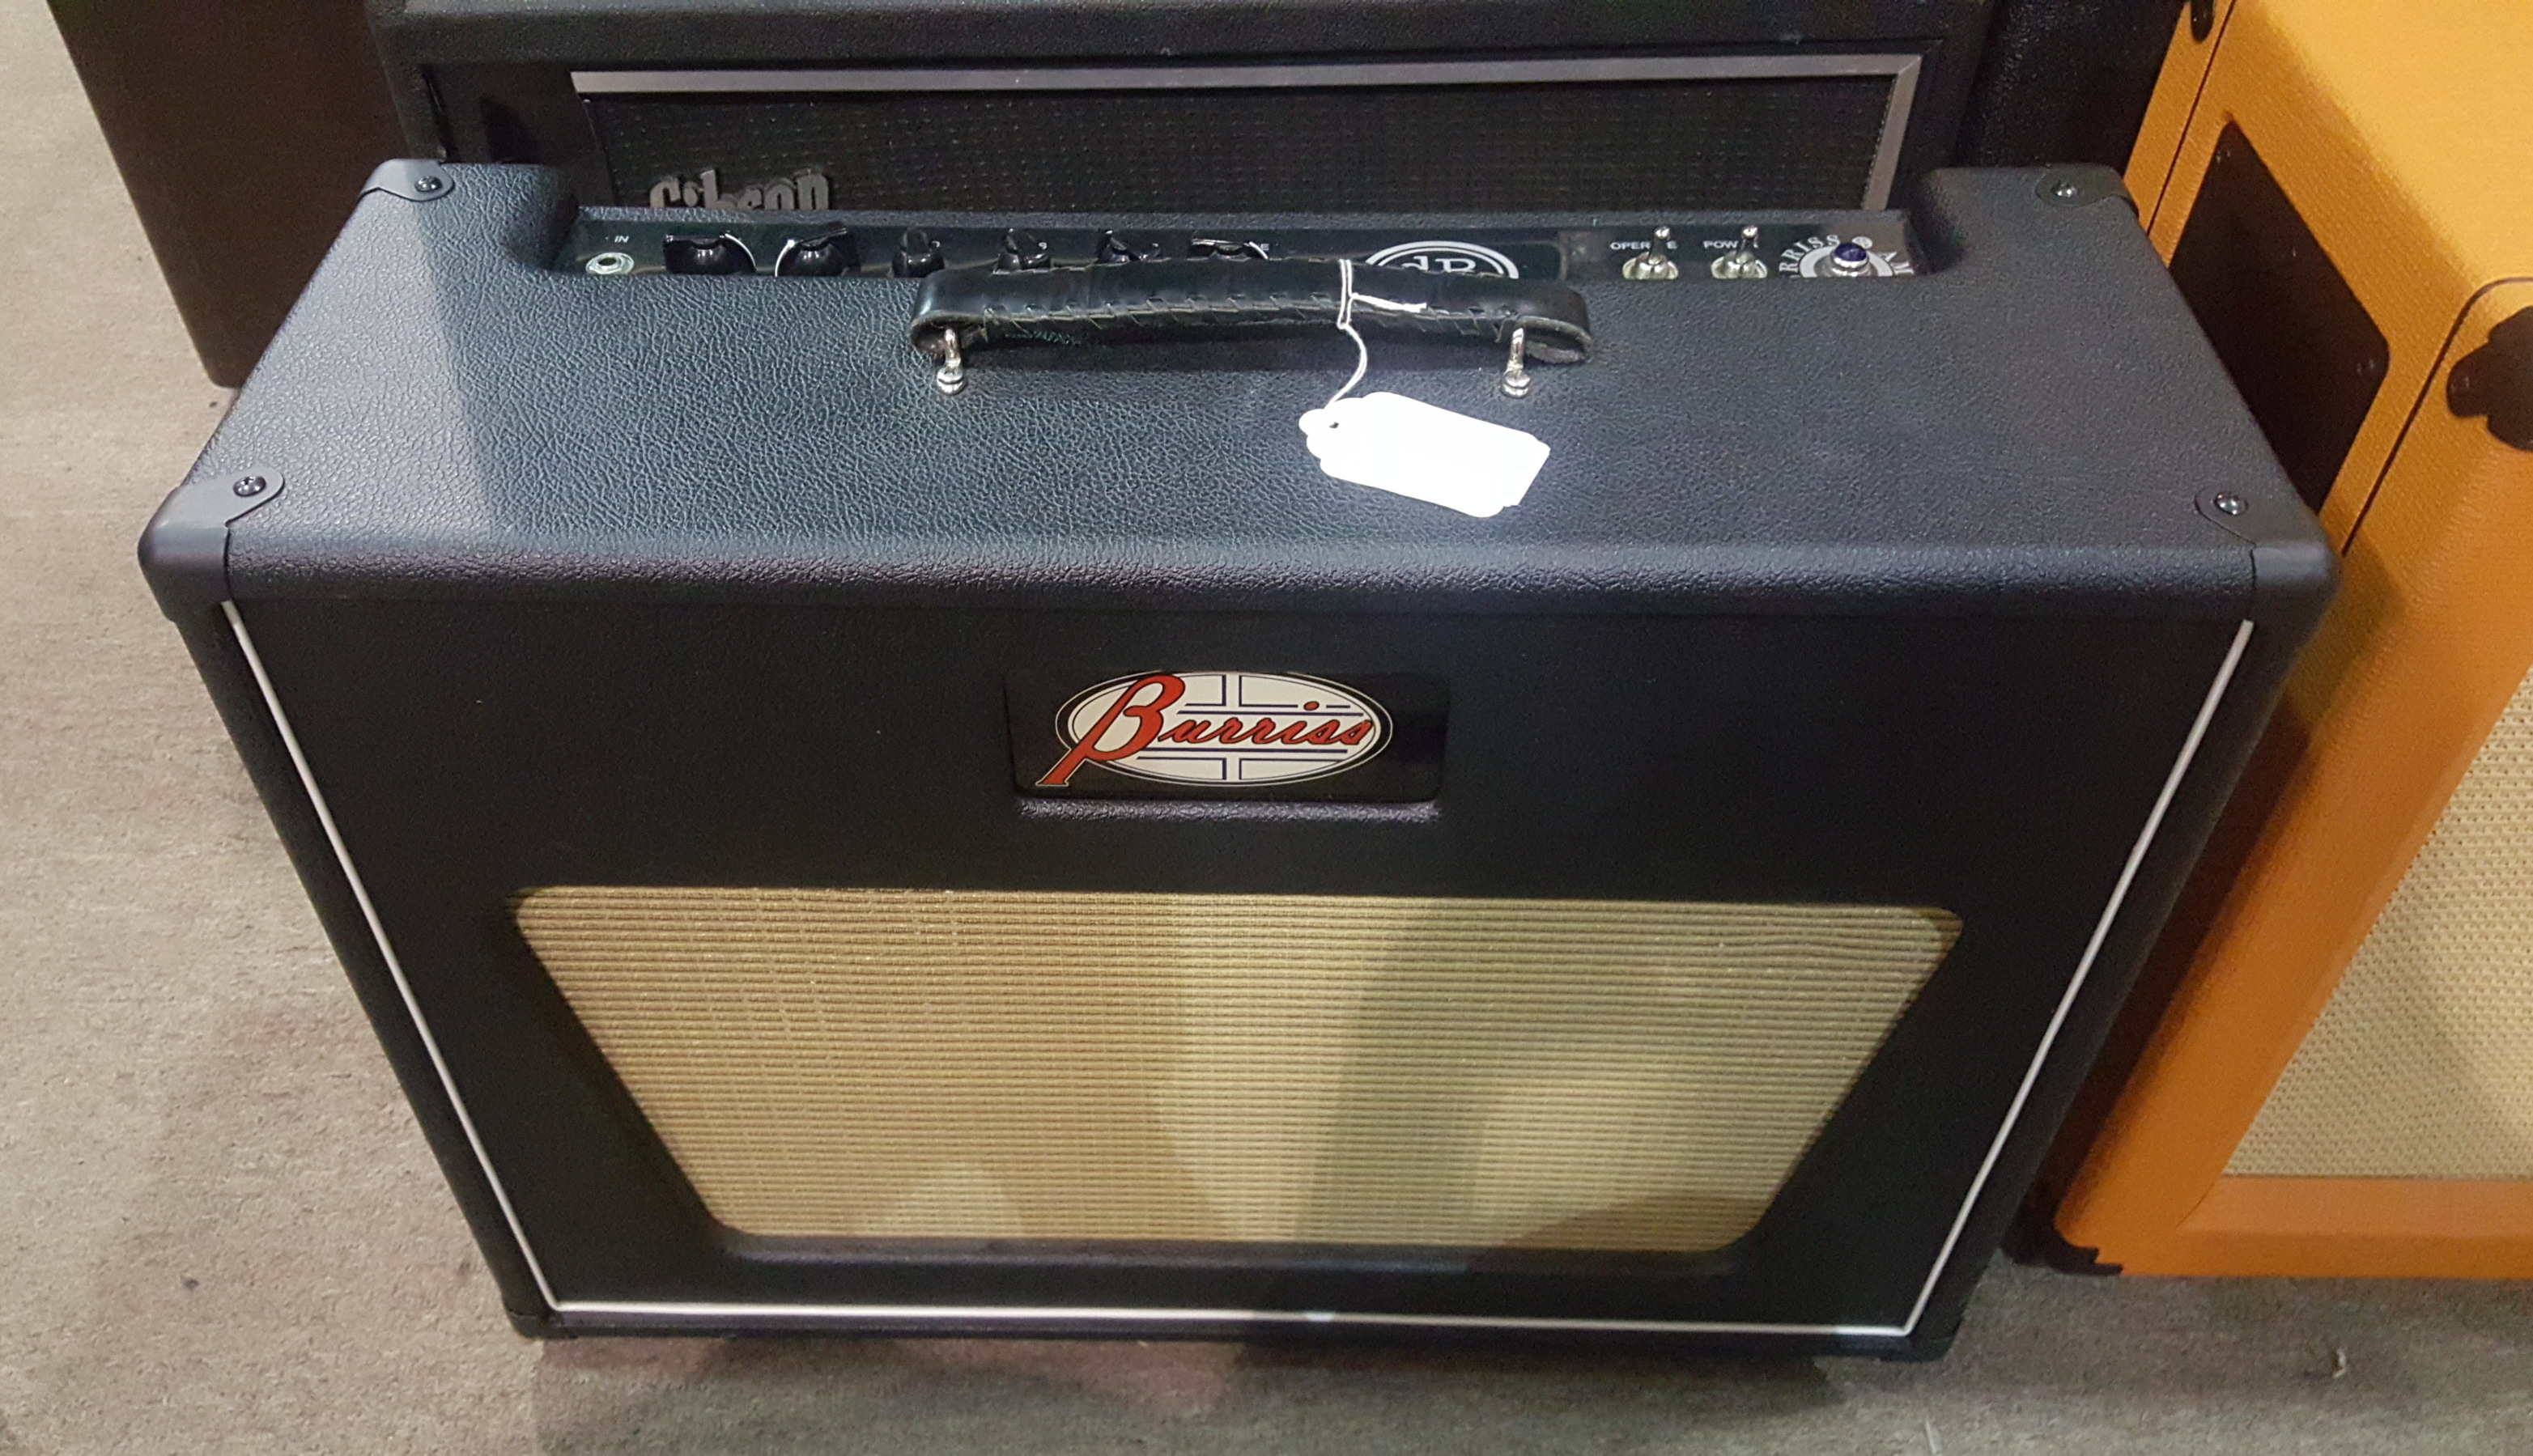 BURRISS dB SPECIAL 38W 2x12 Tube Guitar Combo Amp - LOCAL PICKUP ONLY!